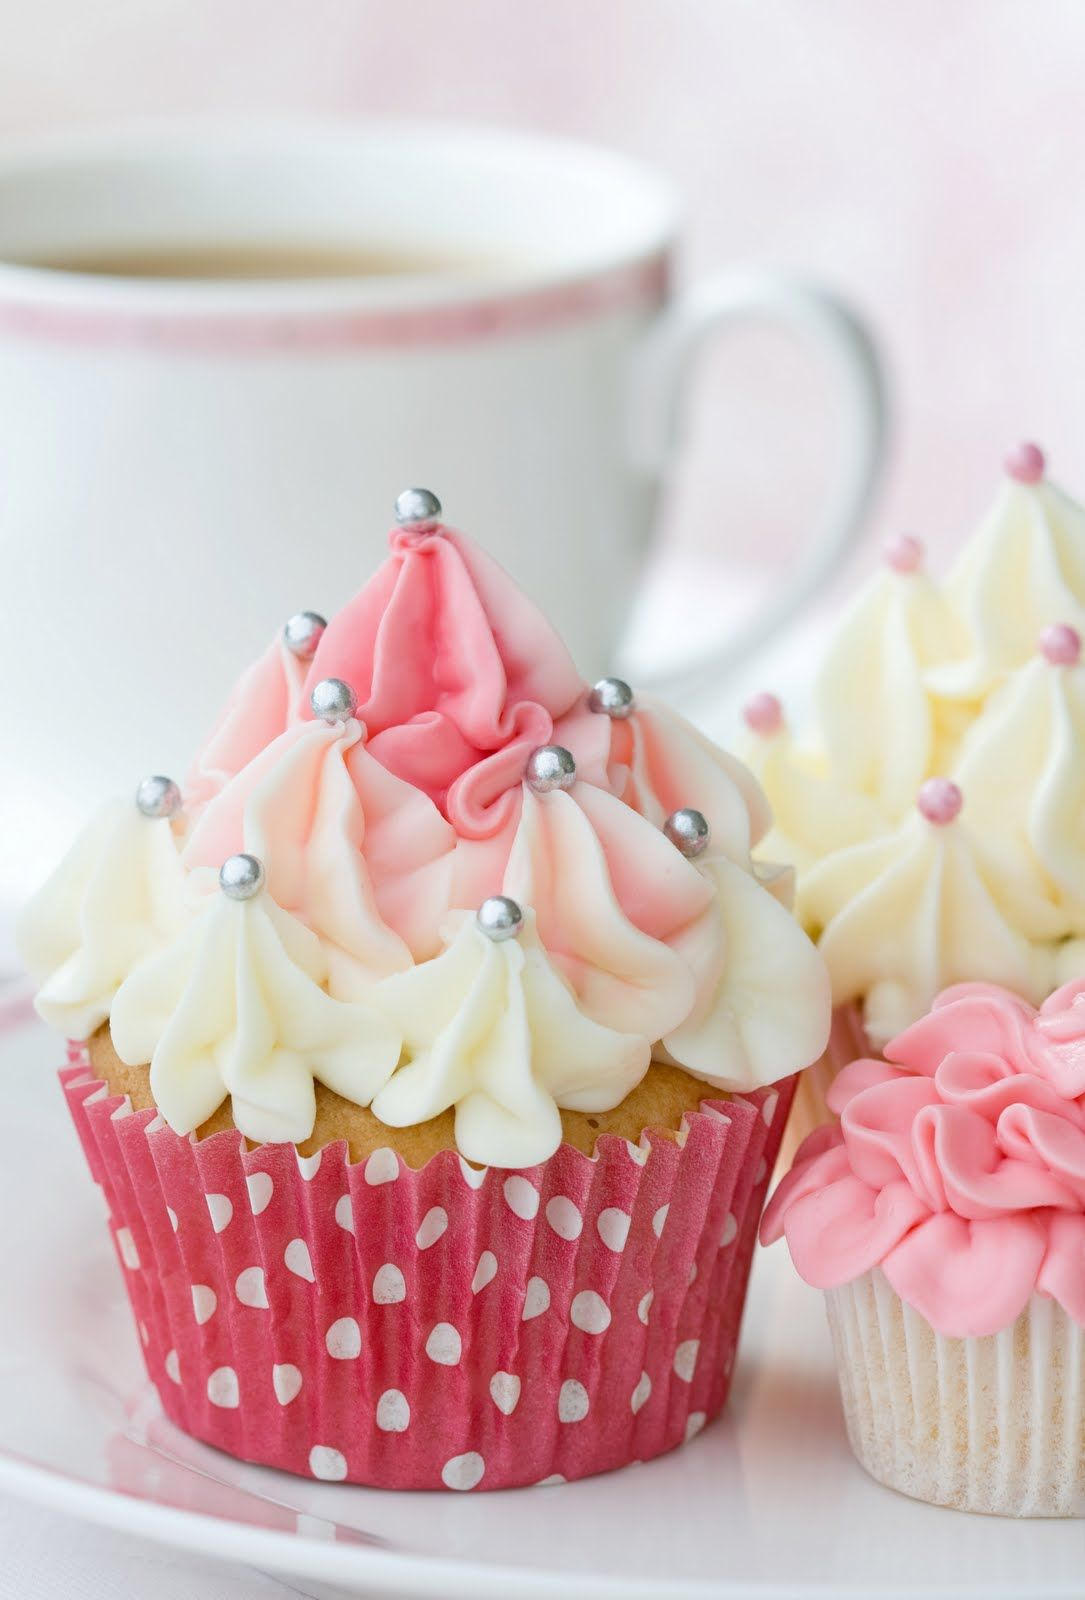 Cupcake Ideas Cute Cupcakes Cake Cup Cakes And Cups